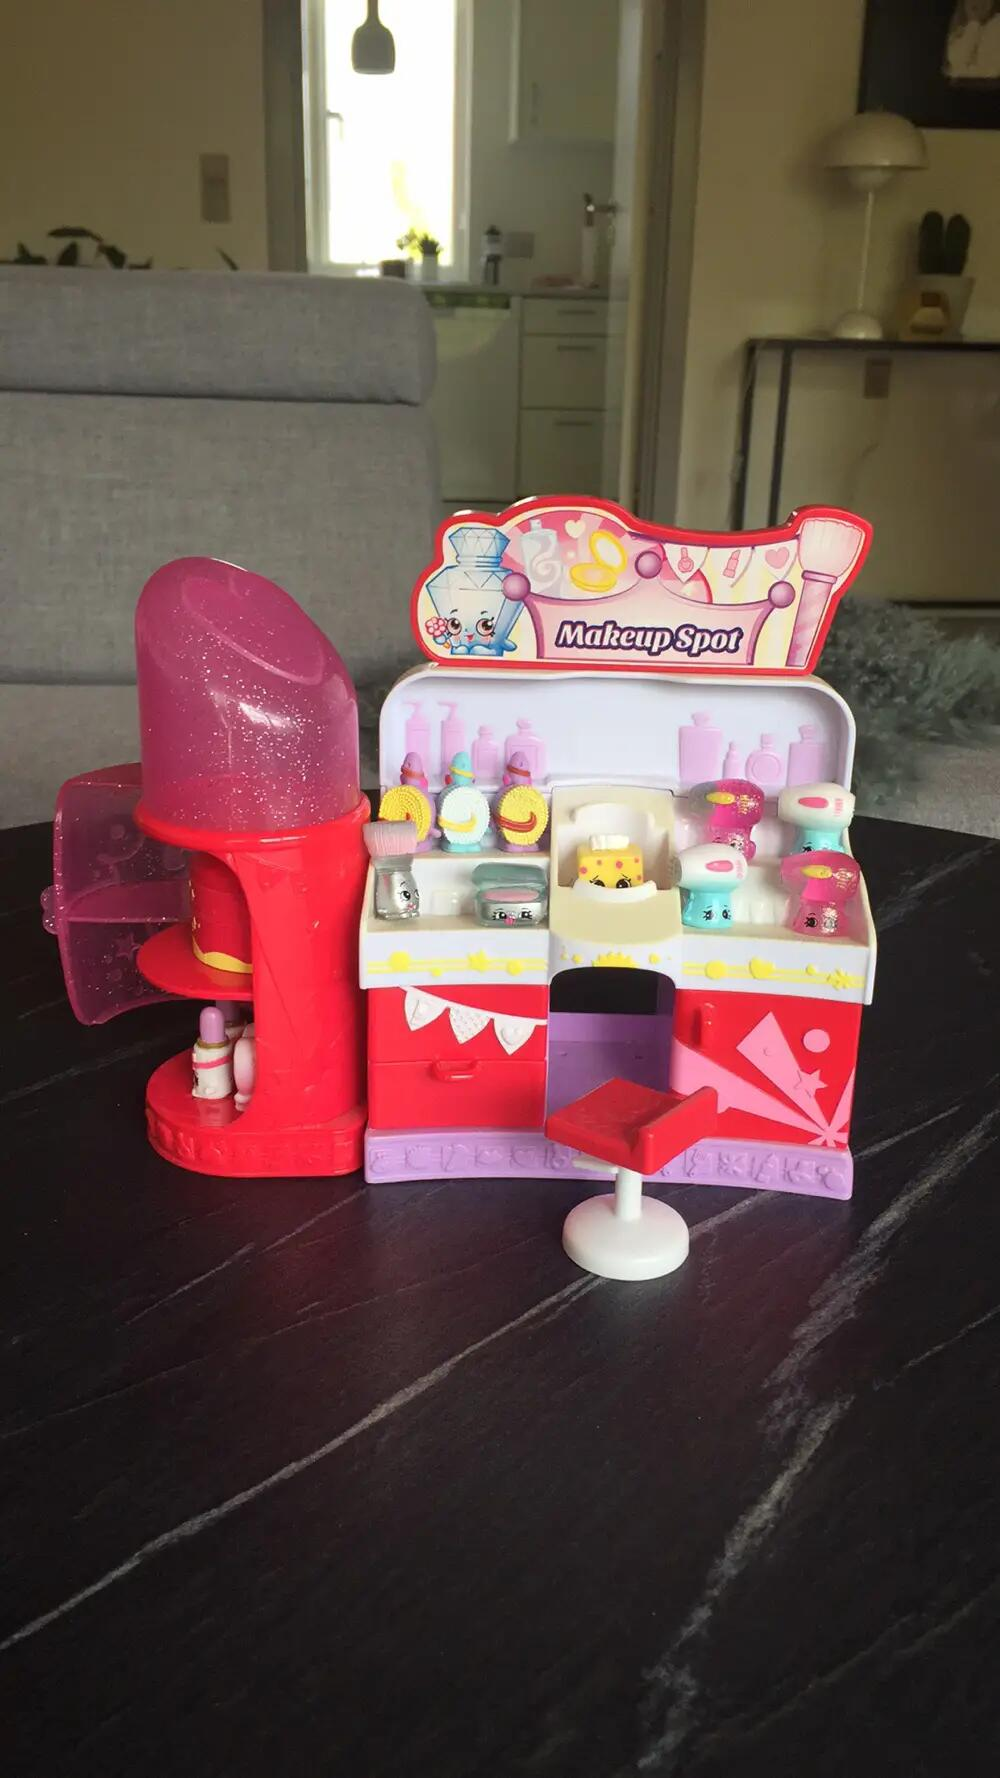 Shopkins Make-up butik